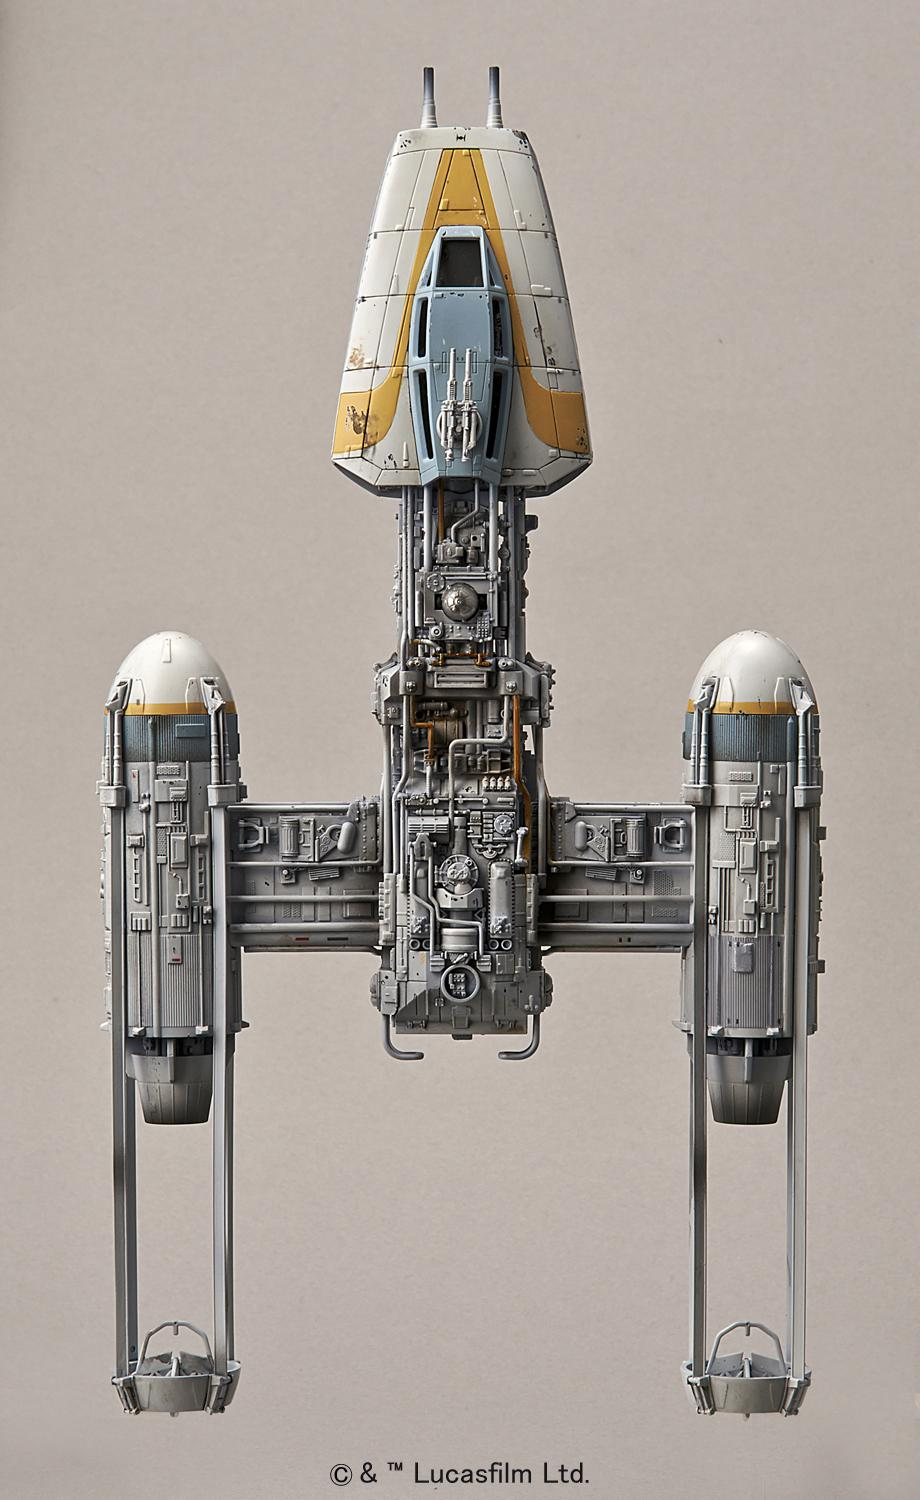 Bandai x Star Wars 1/72 Y-Wing Starfighter: UPDATE Many